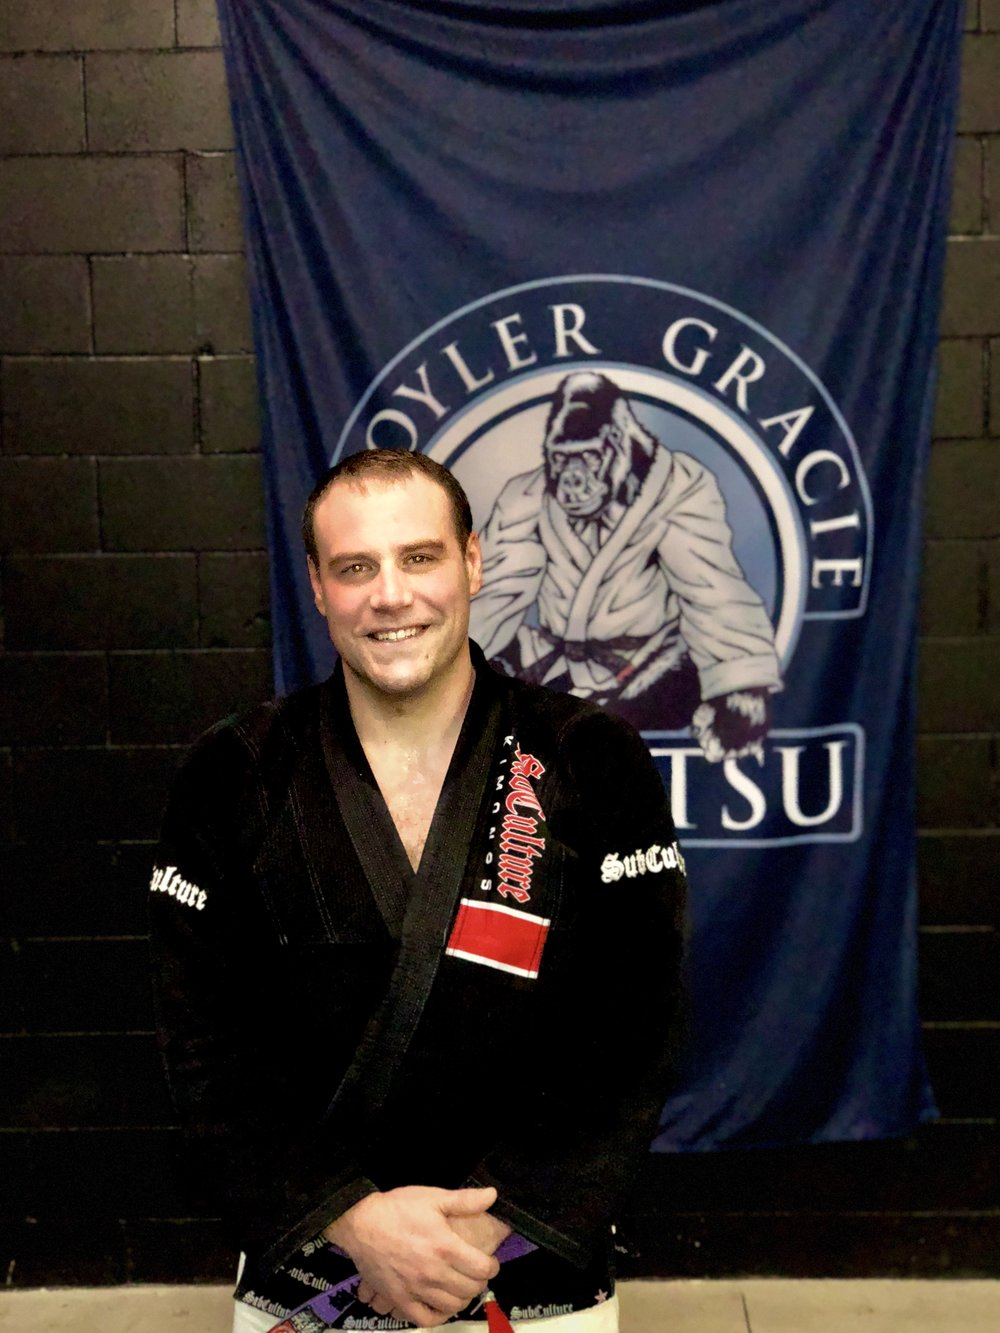 Nathan DeCamp representing Kroyler Gracie Association in Kalamazoo, Michigan.